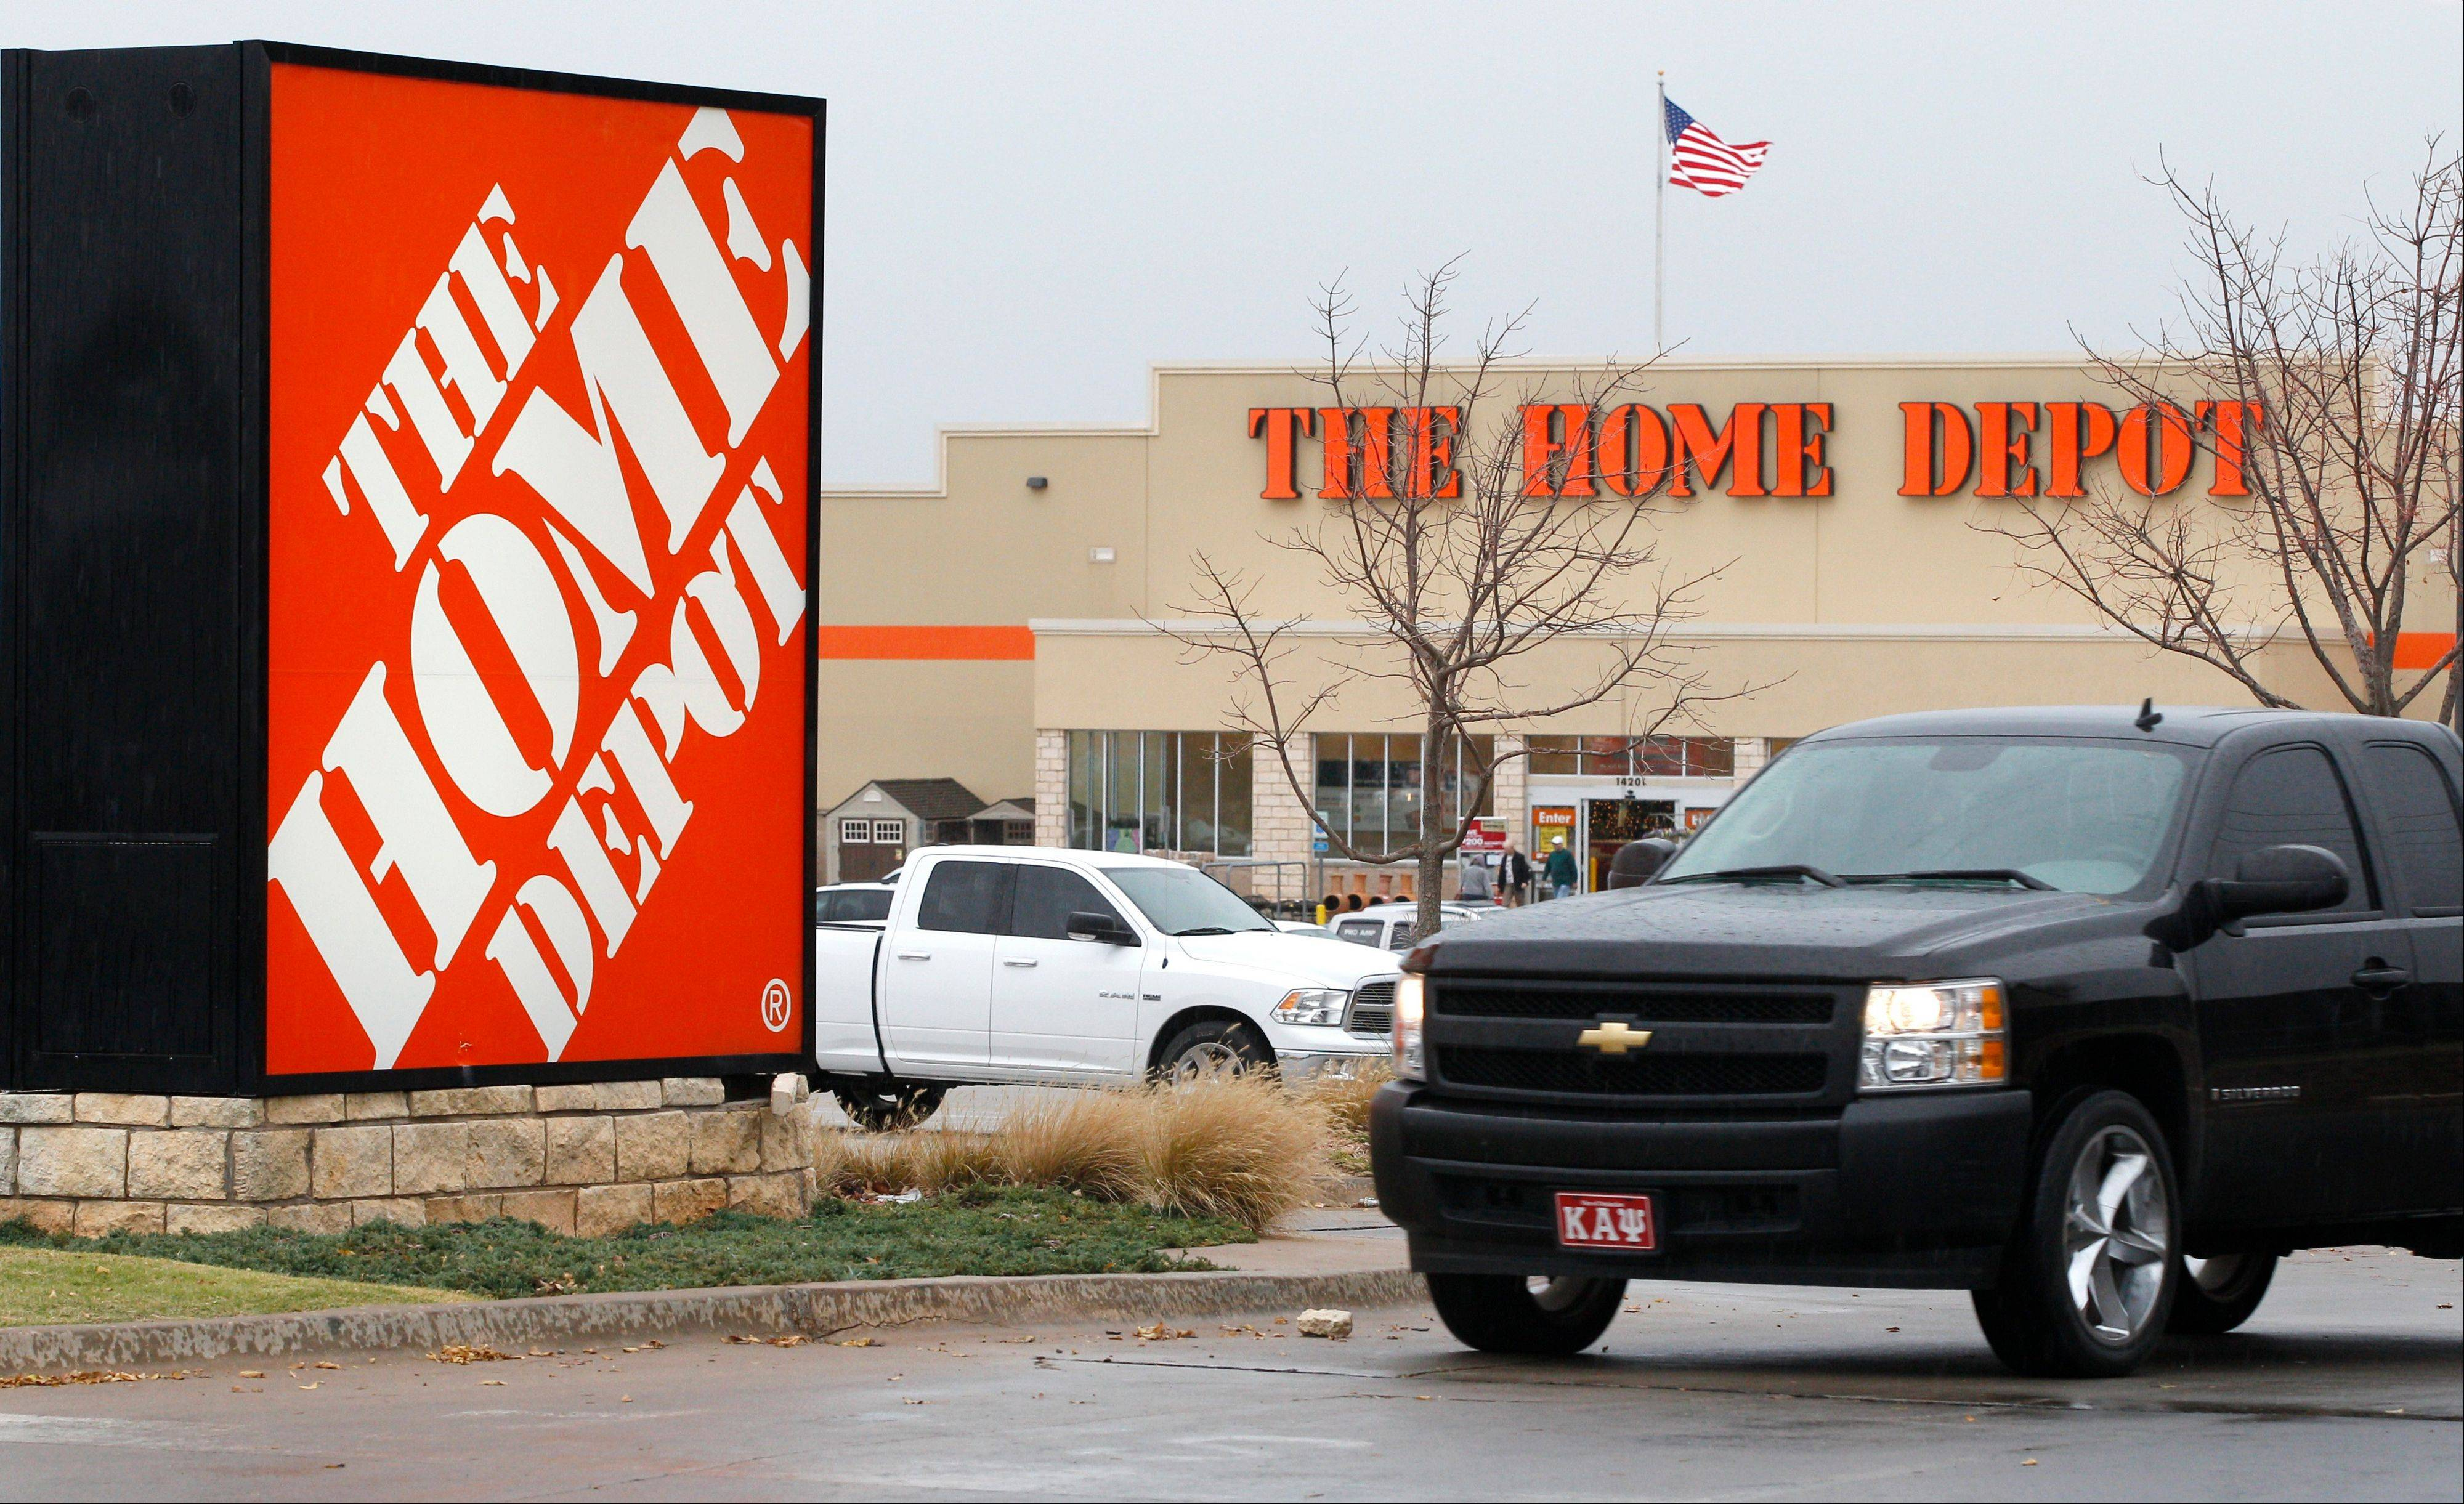 Better sales in the U.S. and healthy demand for its mainstay home-improvement products helped Home Depot's net income rise 13 percent in its fiscal second quarter.